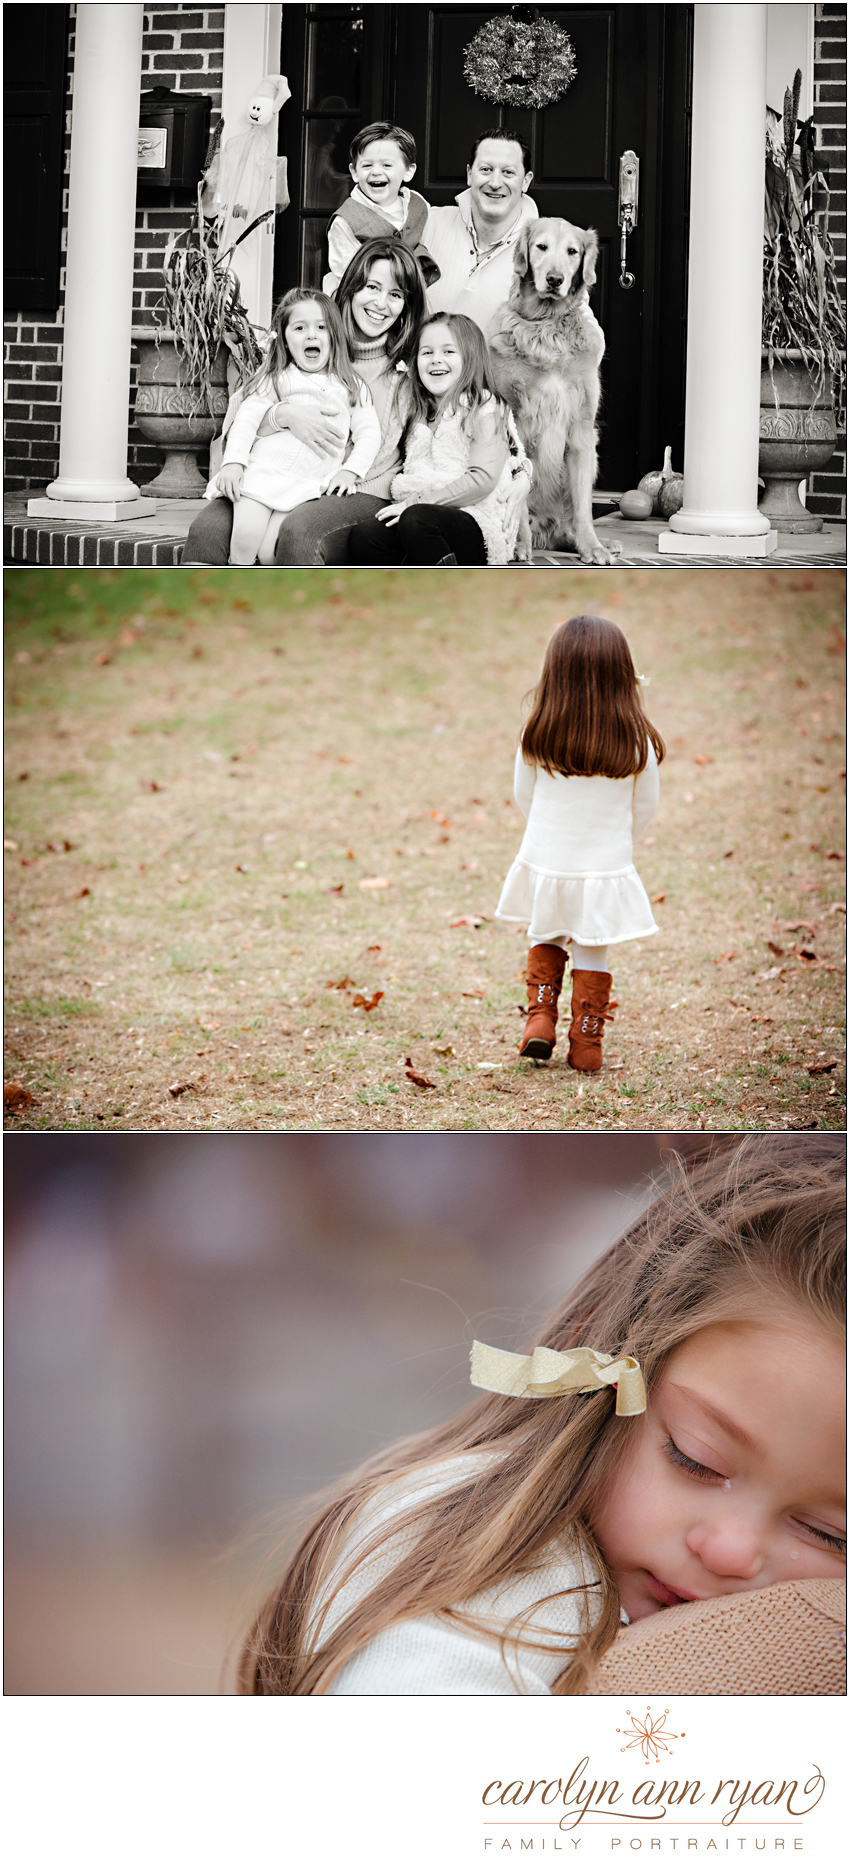 Carolyn Ann Ryan photographs Playful Charlotte, NC Family Portraits